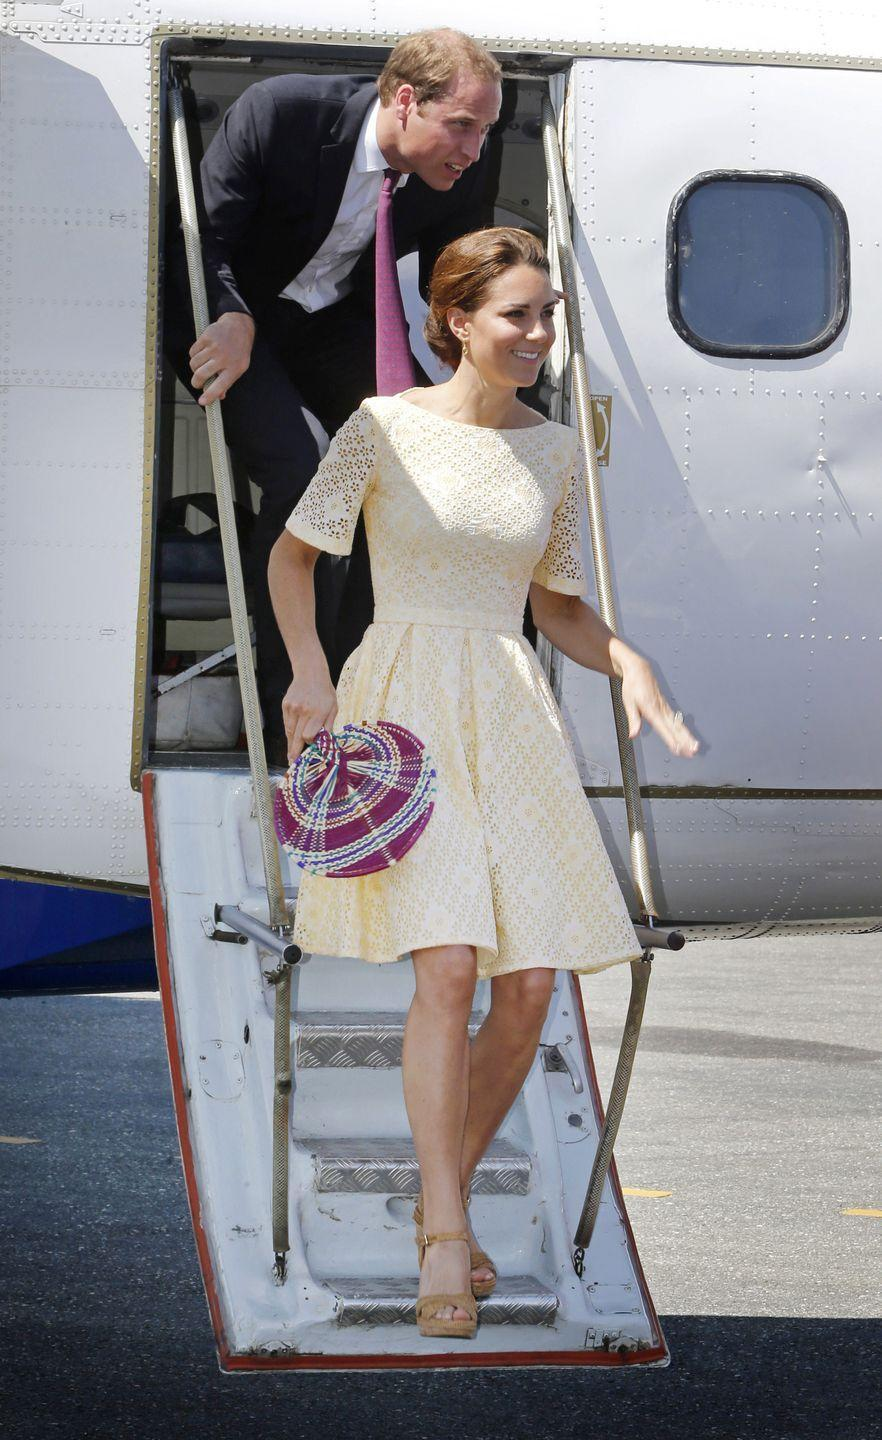 """<p>On a tour of the Pacific in 2012, Kate stepped out wearing a yellow fit-and-flare cotton lace dress, but royal fans couldn't figure out the designer. At the time, people believed that the Duchess chose to wear something unknown to be respectful, since she maybe couldn't find something she liked from the Solomon Islands to honor the country.</p><p>A year later, <a href=""""https://www.harpersbazaar.com.au/fashion/kate-middleton-private-dressmaker-18271"""" rel=""""nofollow noopener"""" target=""""_blank"""" data-ylk=""""slk:the palace revealed"""" class=""""link rapid-noclick-resp"""">the palace revealed</a> that the duchess wore a peach maternity dress made by her """"private dressmaker."""" Fans soon connected the dots. Most people don't have a problem with Kate having a private designer, but some argue it stops from other British businesses benefitting from the """"Kate Middleton"""" effect, in which a company sales rocket after she is seen in one of their items.</p>"""